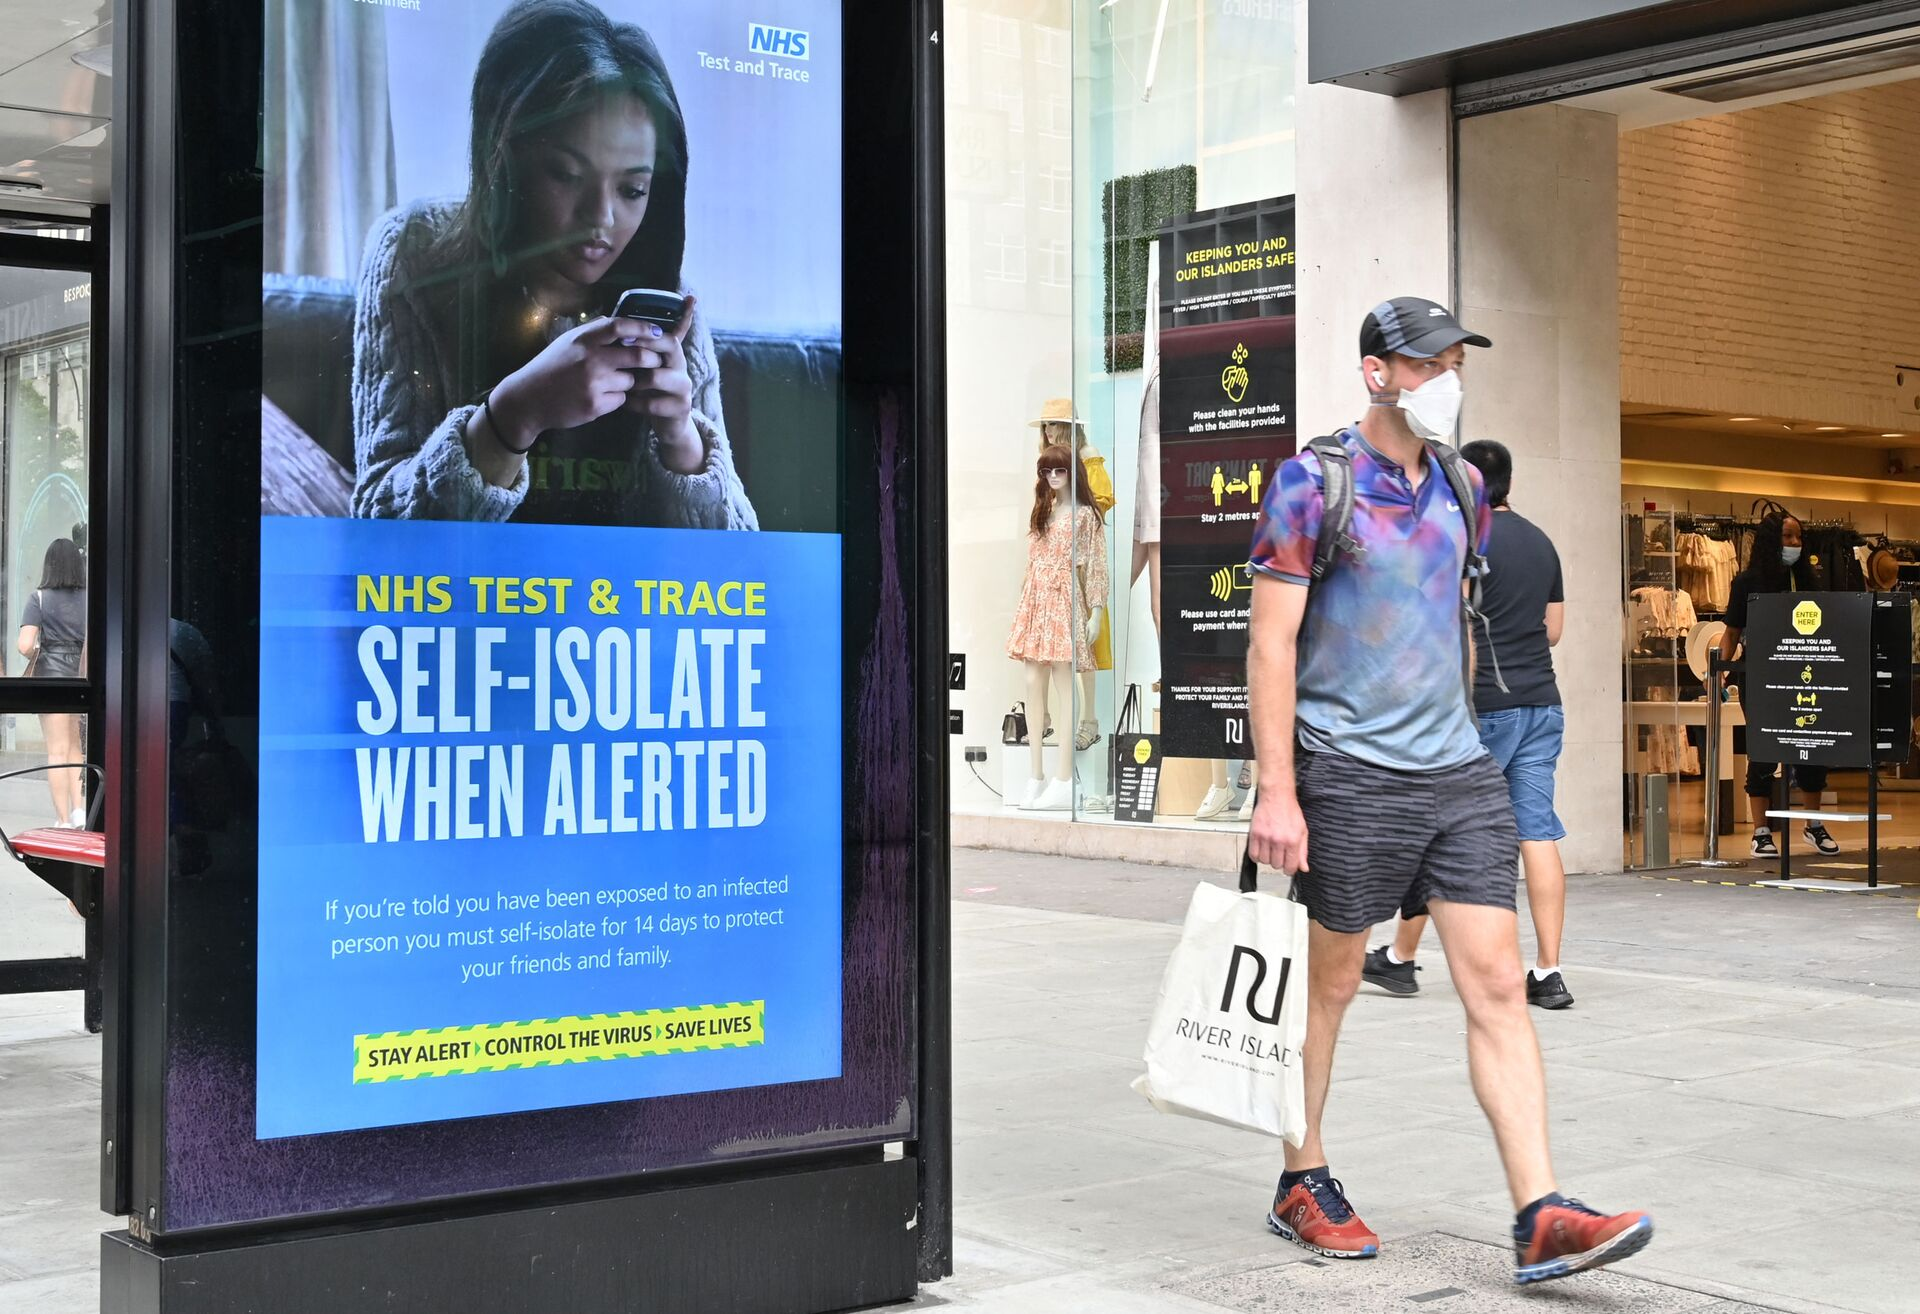 A shopper walks past an advertisment for the UK government's NHS Test and Trace system in Regent Street in London on June 15, 2020 as some non-essential retailers reopen from their coronavirus shutdown - Sputnik International, 1920, 07.09.2021